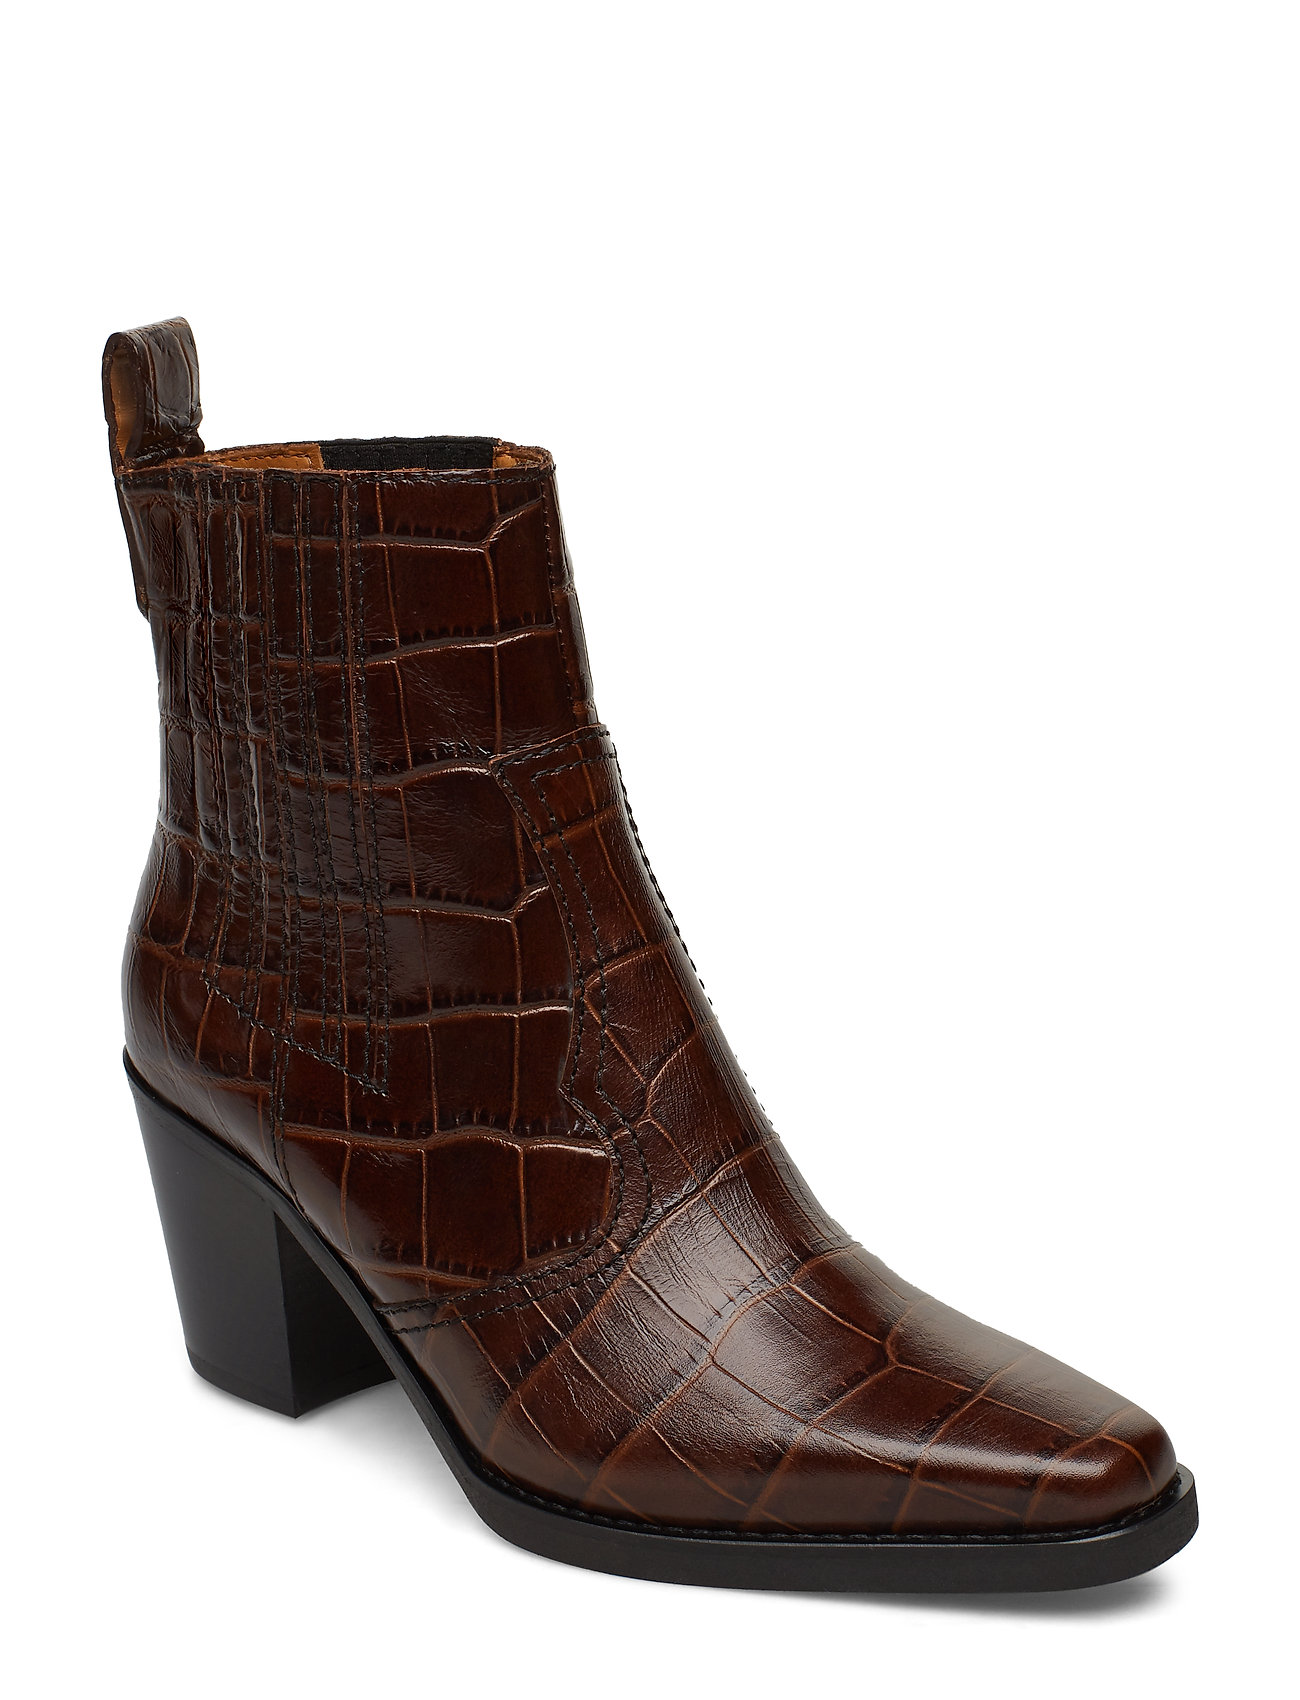 Image of Western Ankle Boots Shoes Boots Ankle Boots Ankle Boots With Heel Brun Ganni (3218820469)